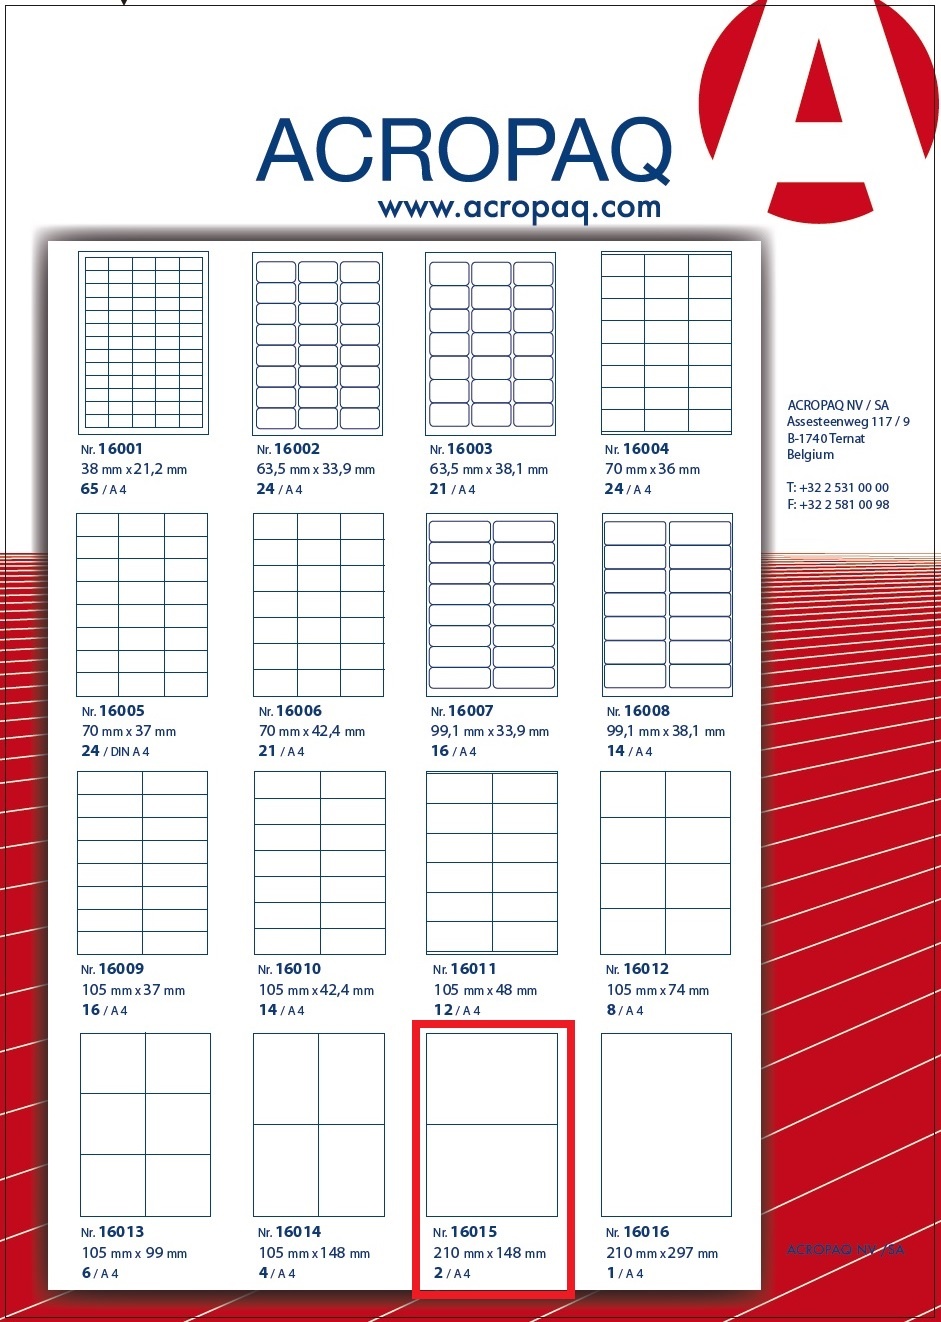 Picture of ACROPAQ LABELS - 100 A4 x 2 labels 210x148mm